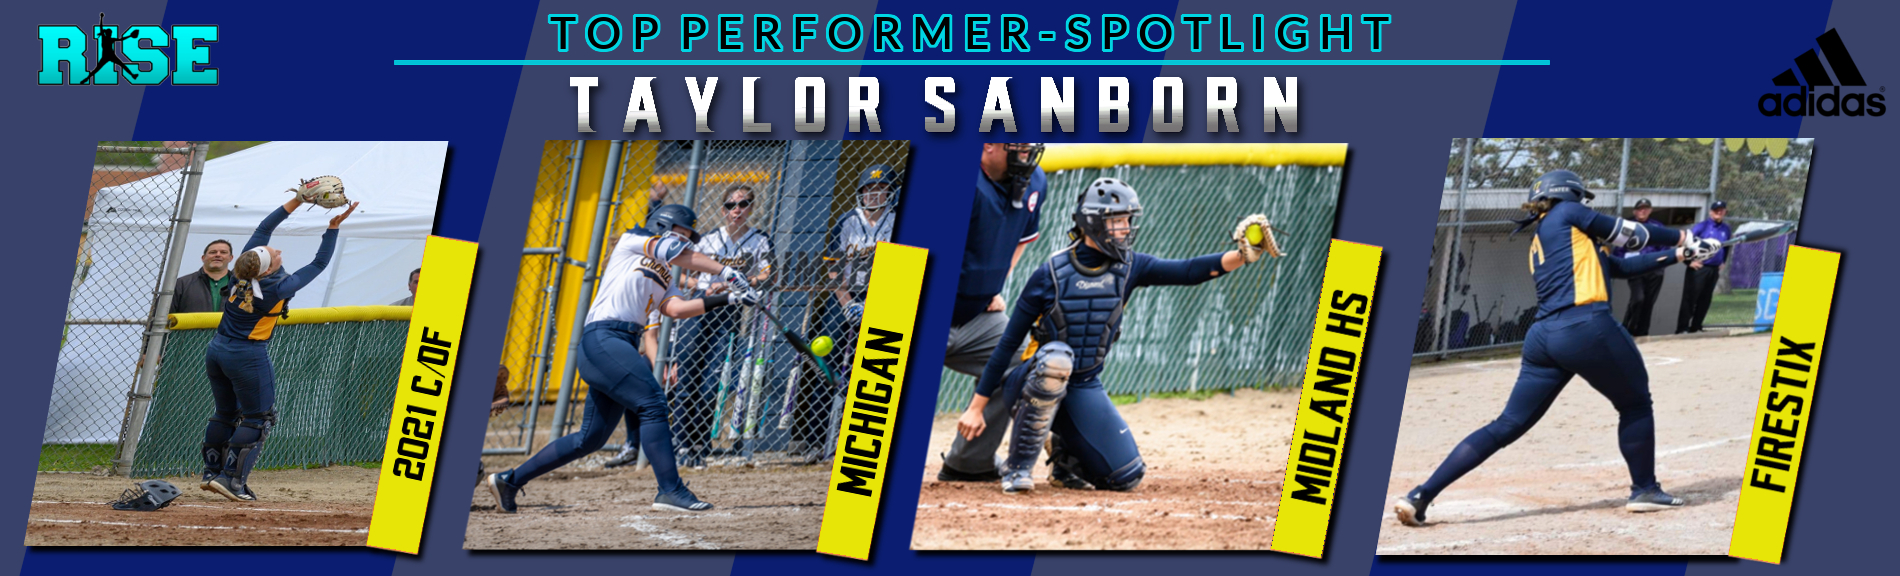 Top Performer-Spotlight